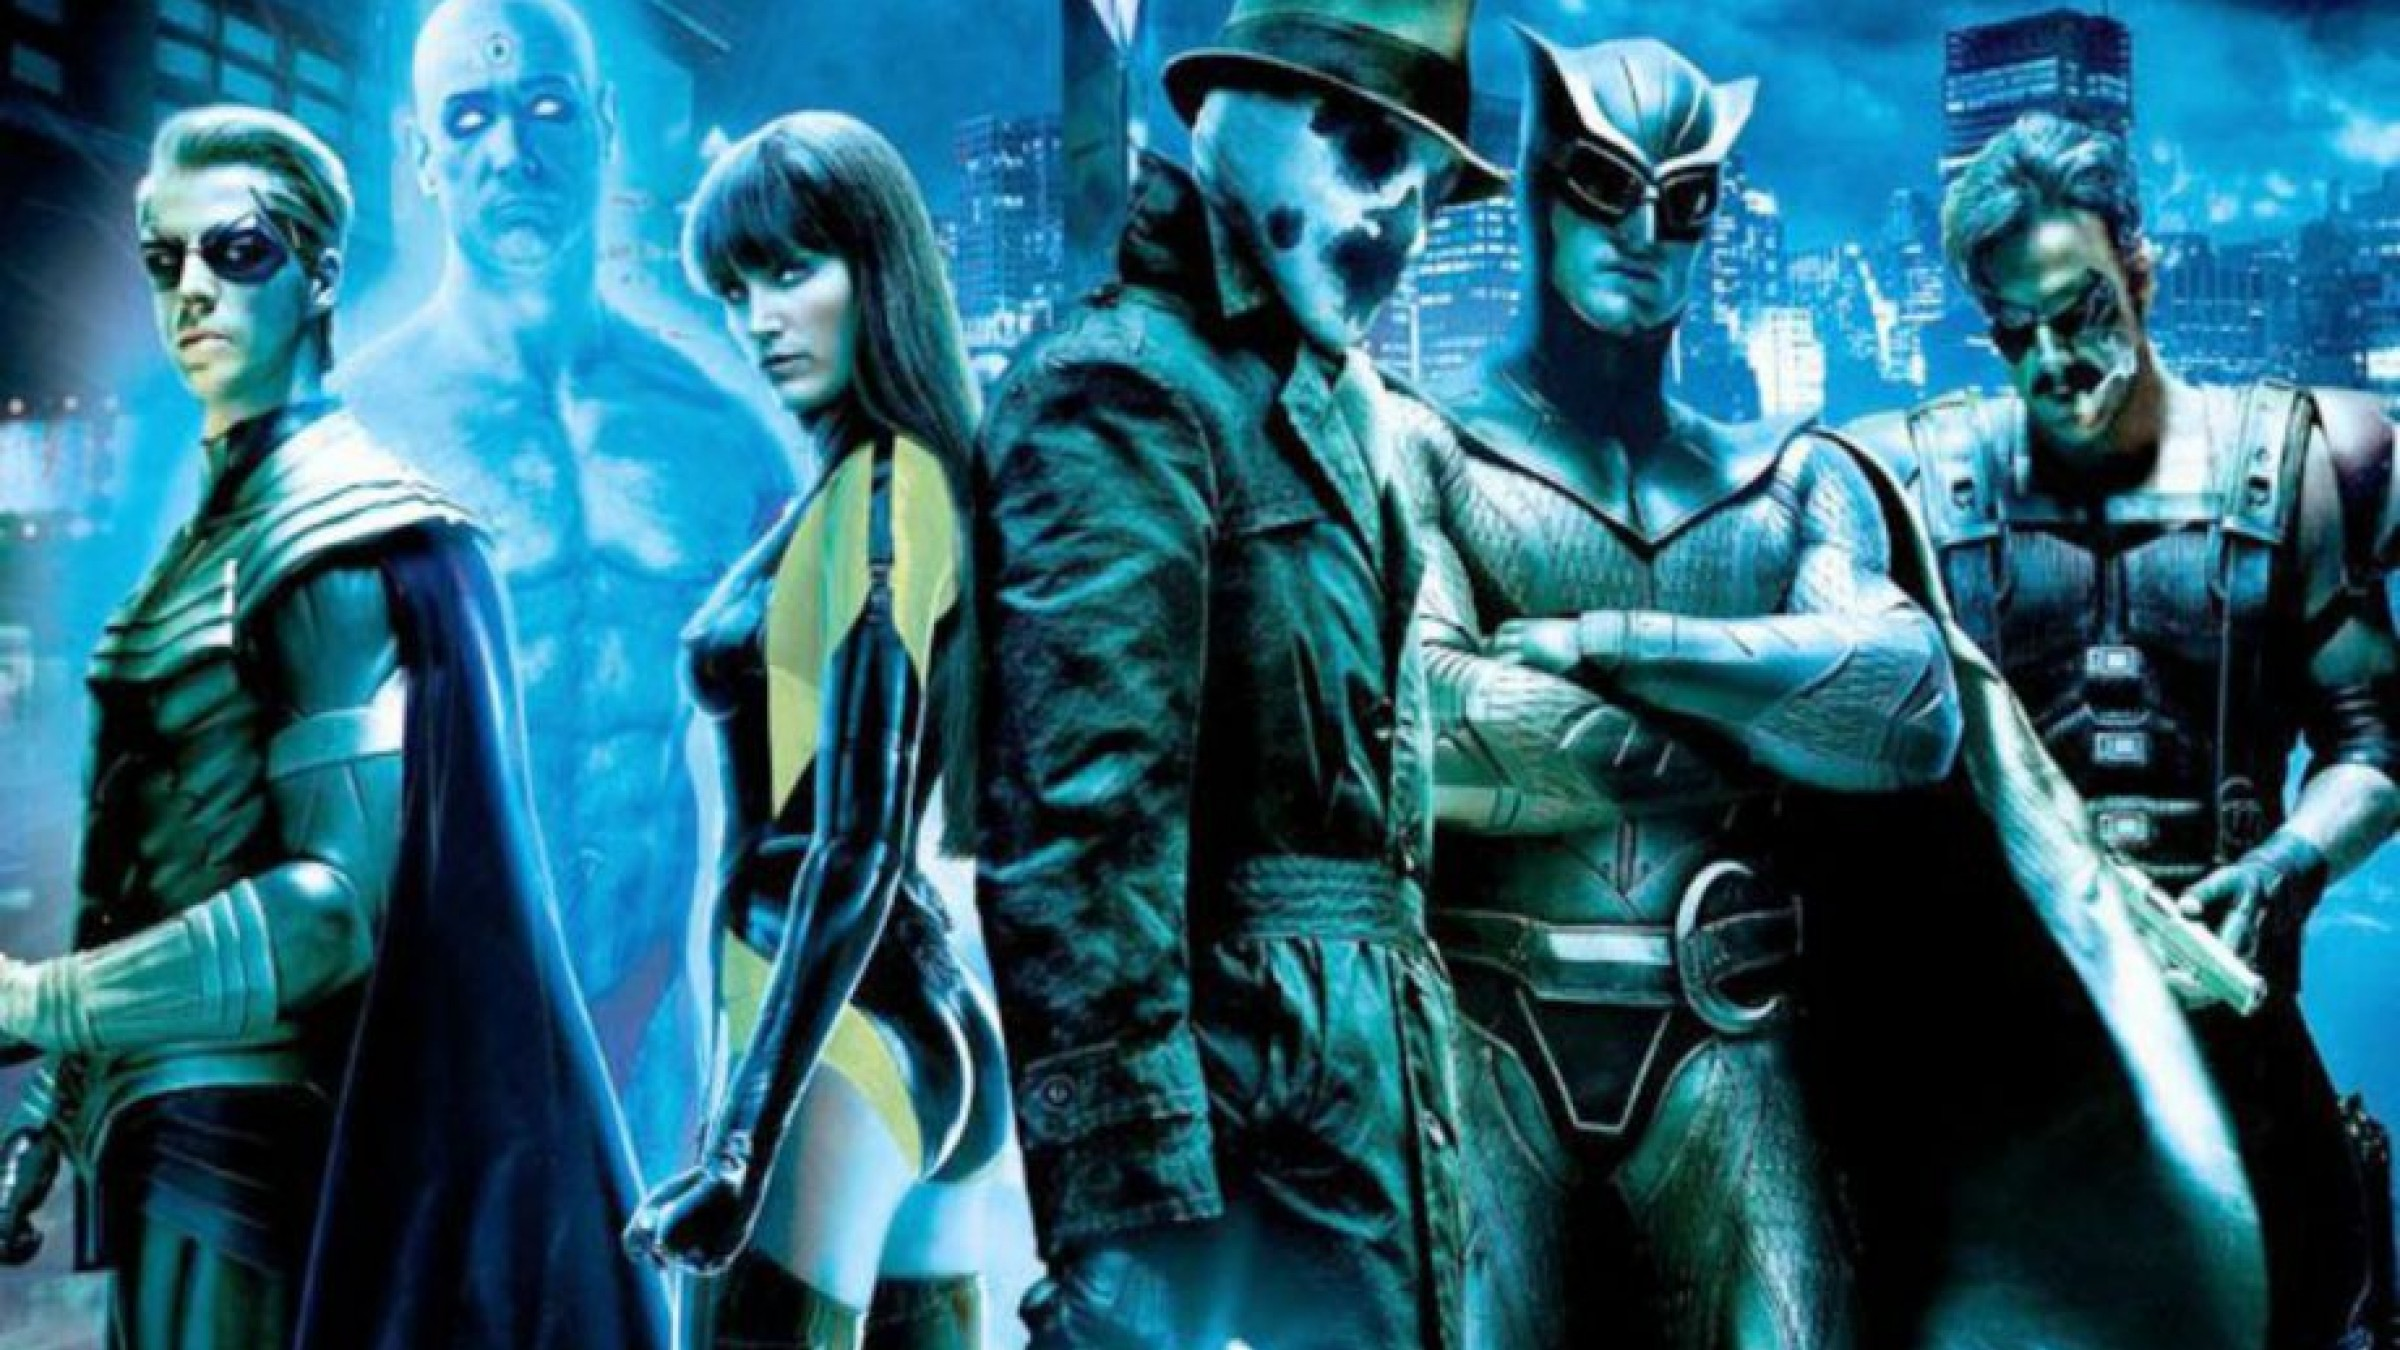 Watchmen, Watchmen Season 2 Release Date And Cast